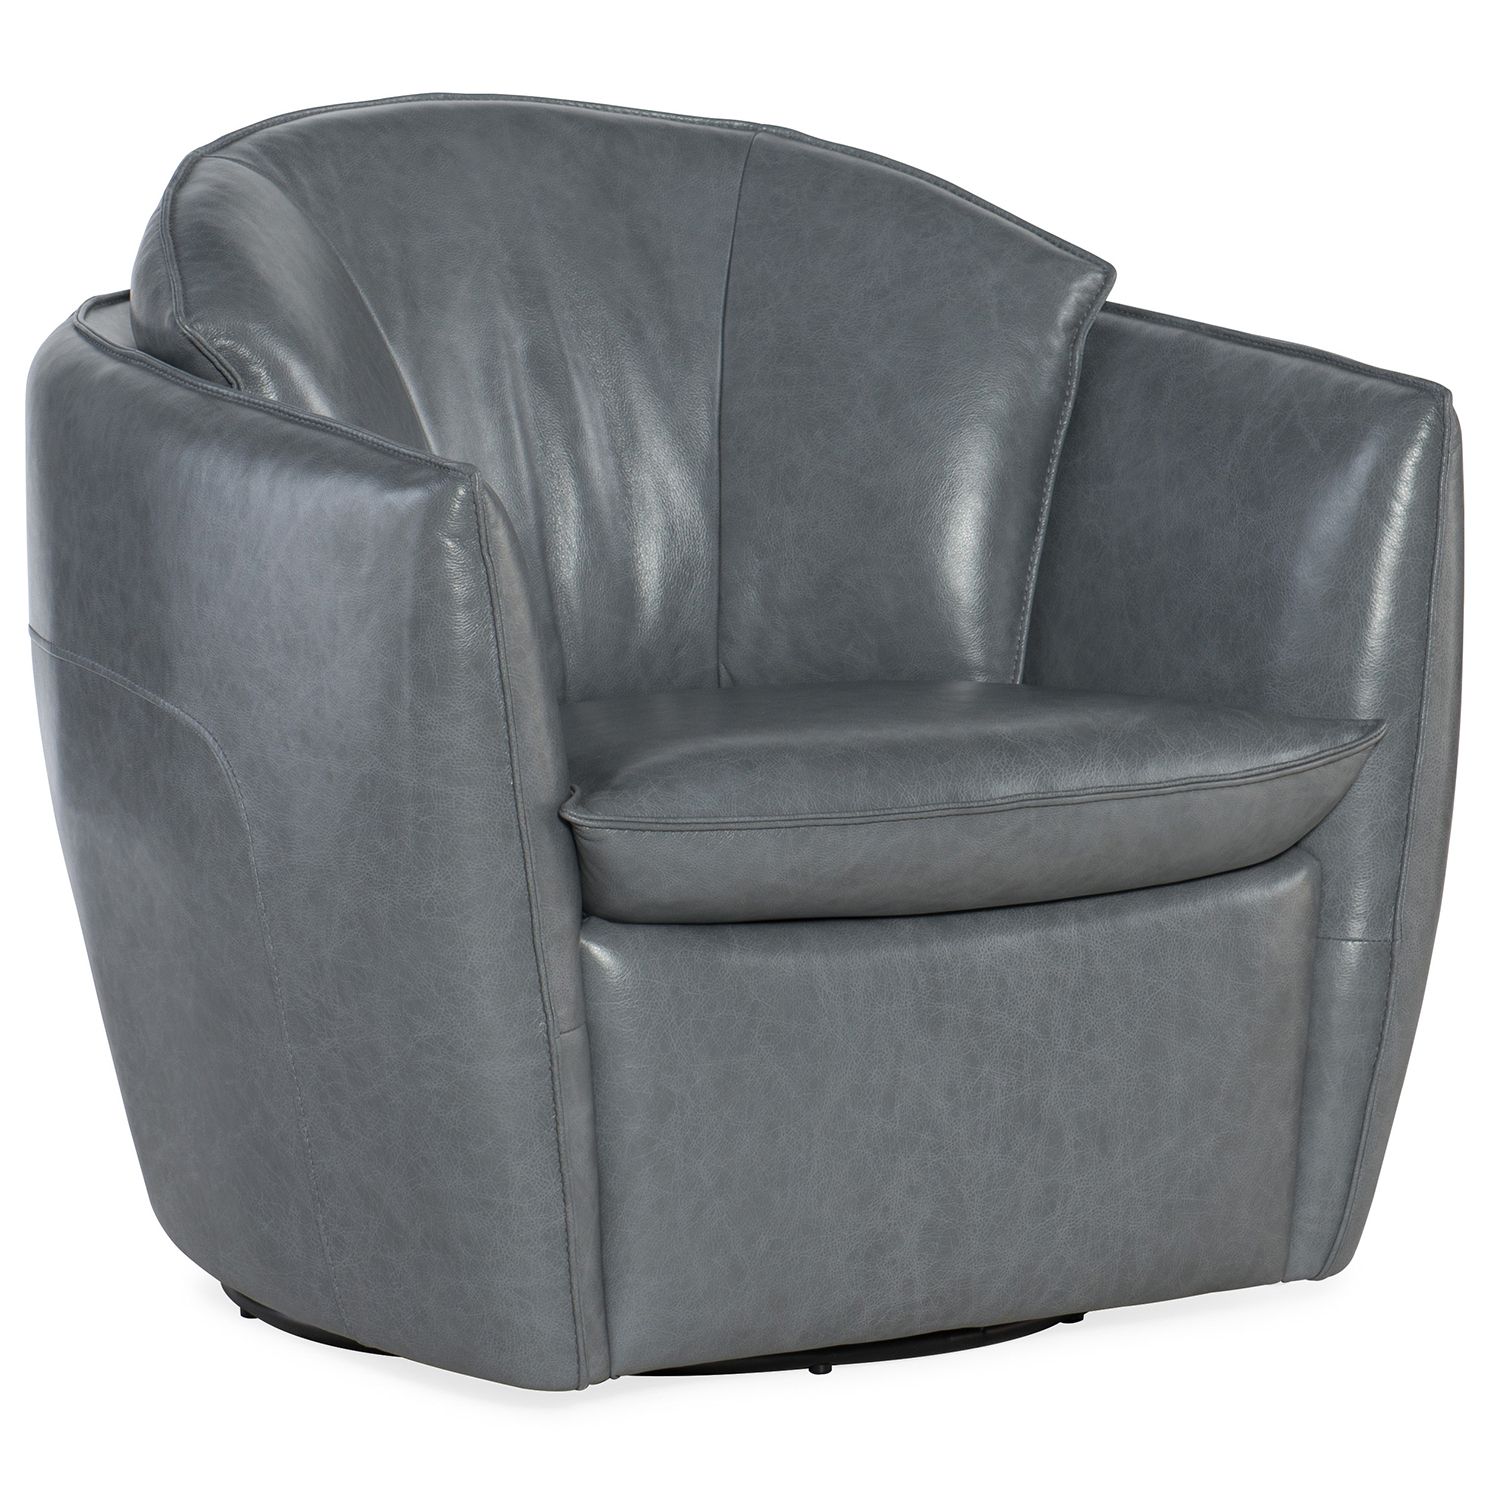 Hooker Furniture Vogue Vintage Dark Gray Swivel Chair Cc213 Sw 096 inside Dark Grey Swivel Chairs